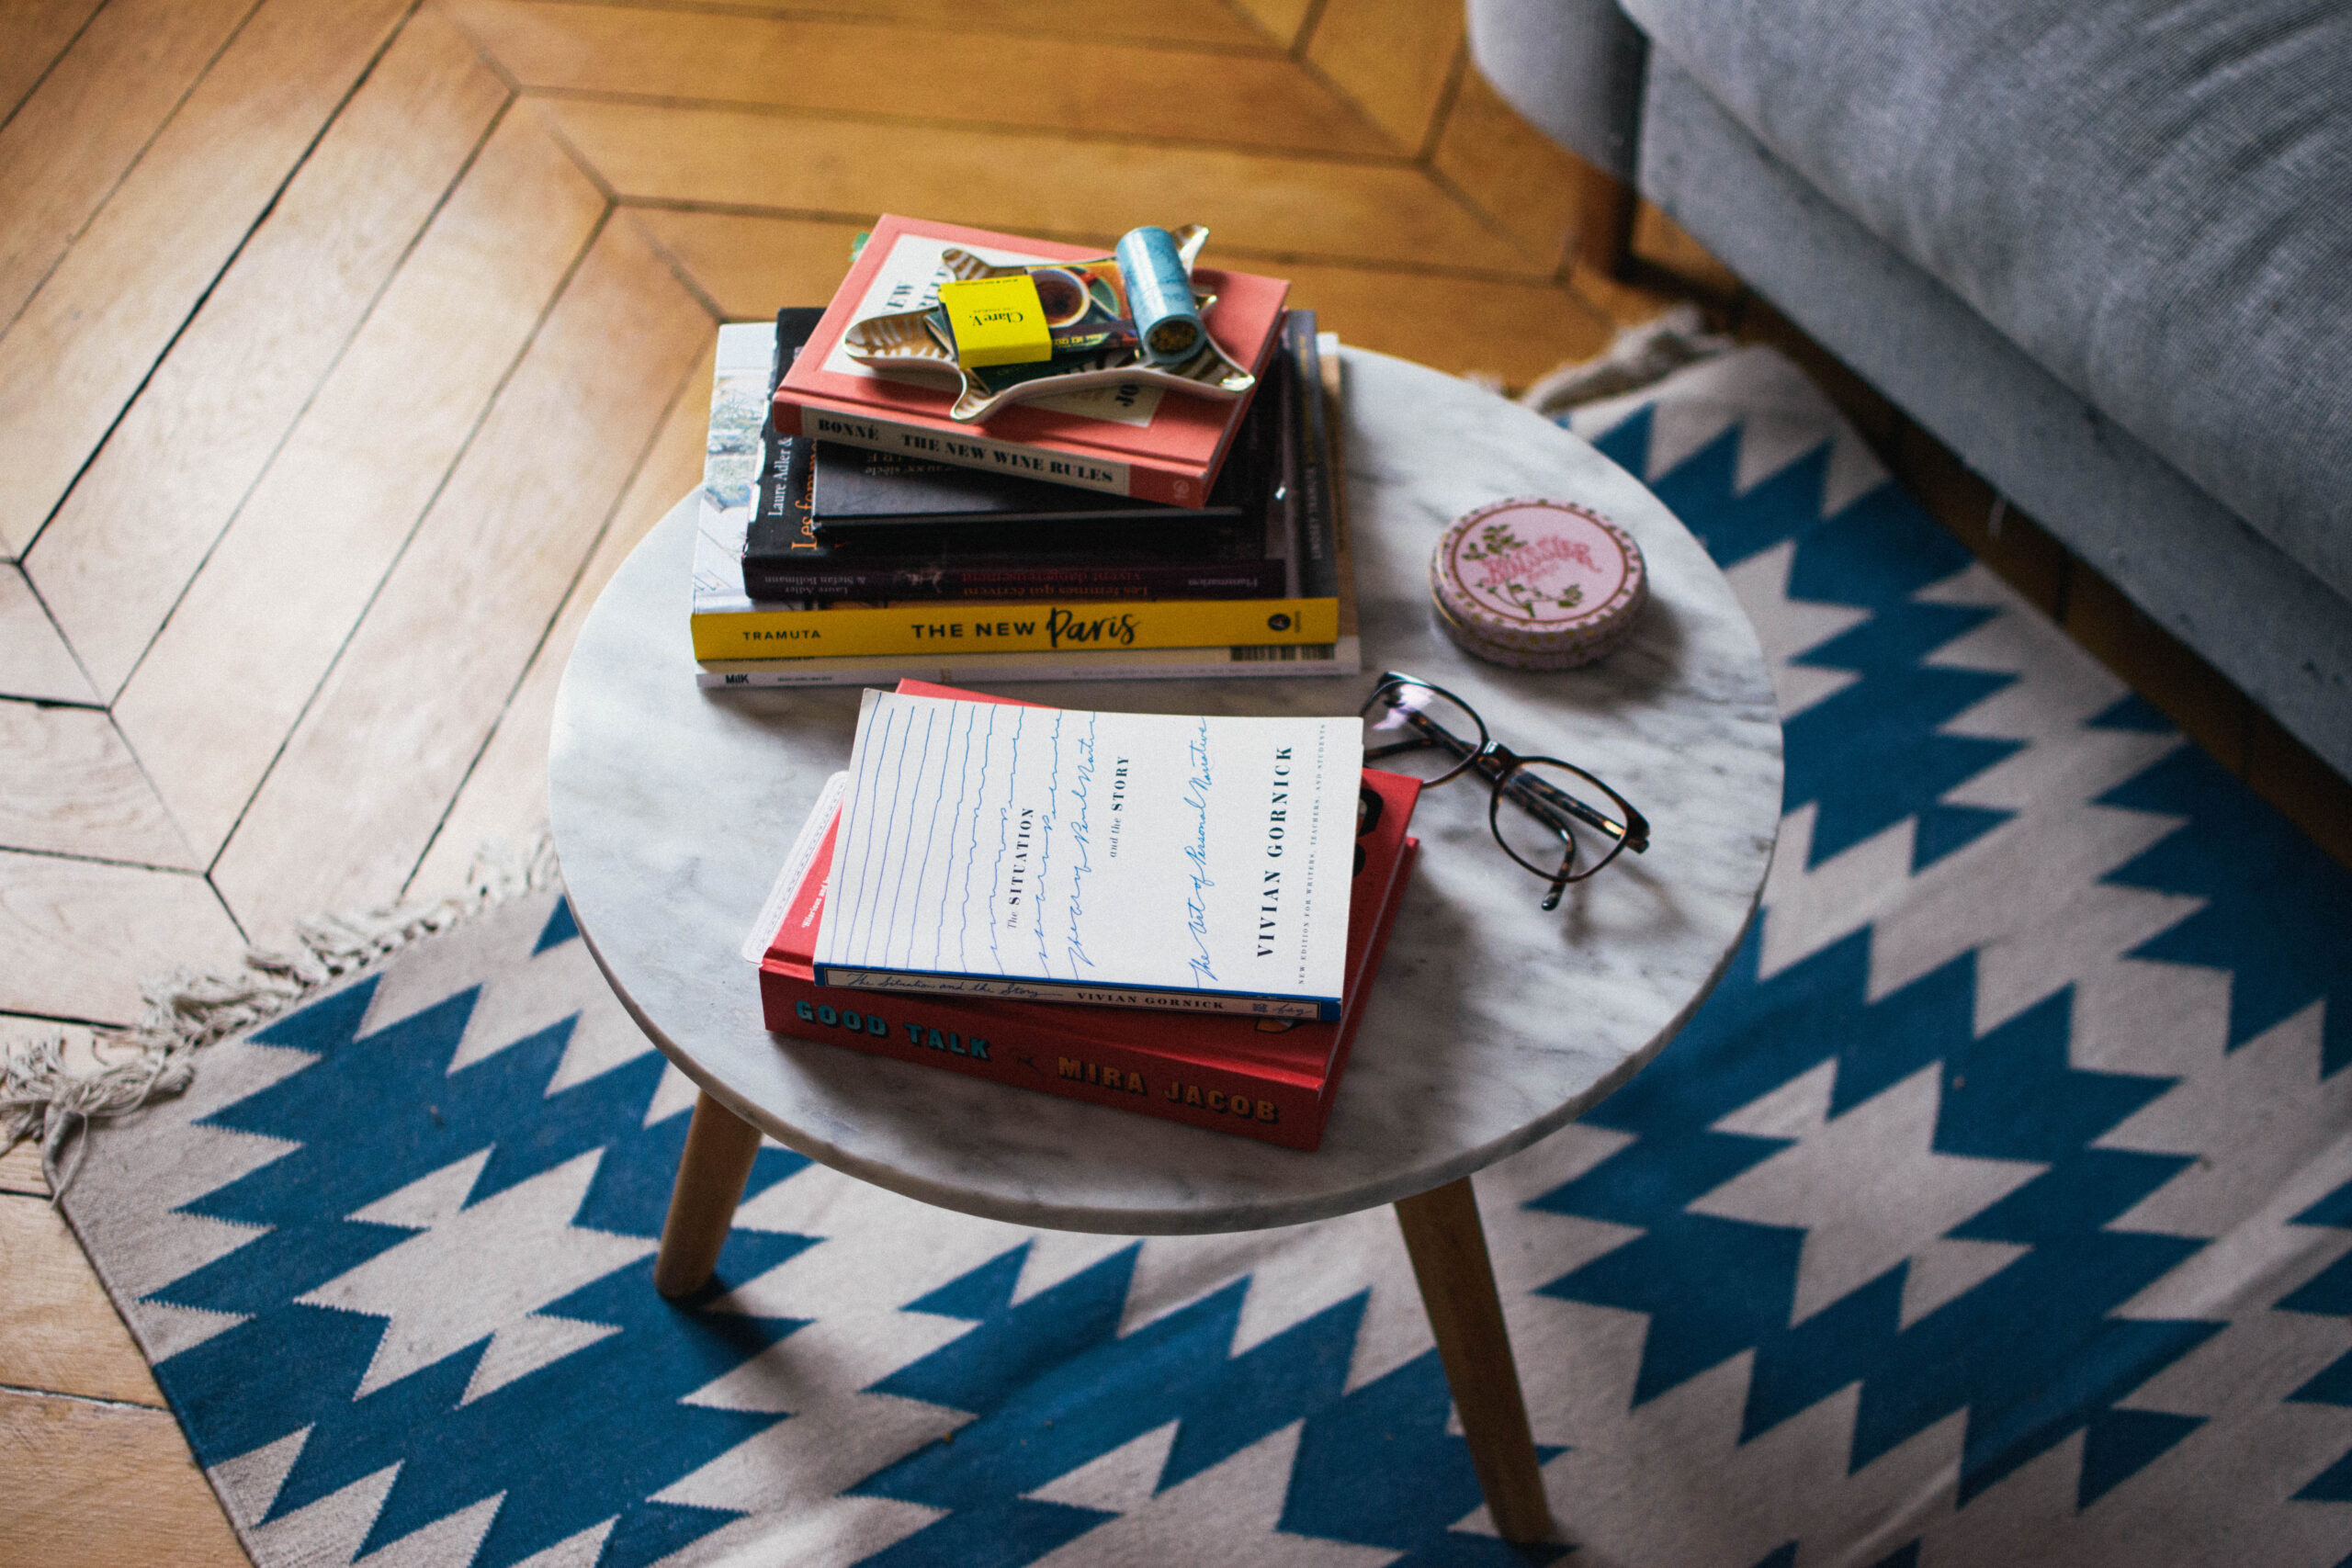 A marble table next to a gray couch in an apartment in Paris, atop are assorted items including books and a pair of glasses.